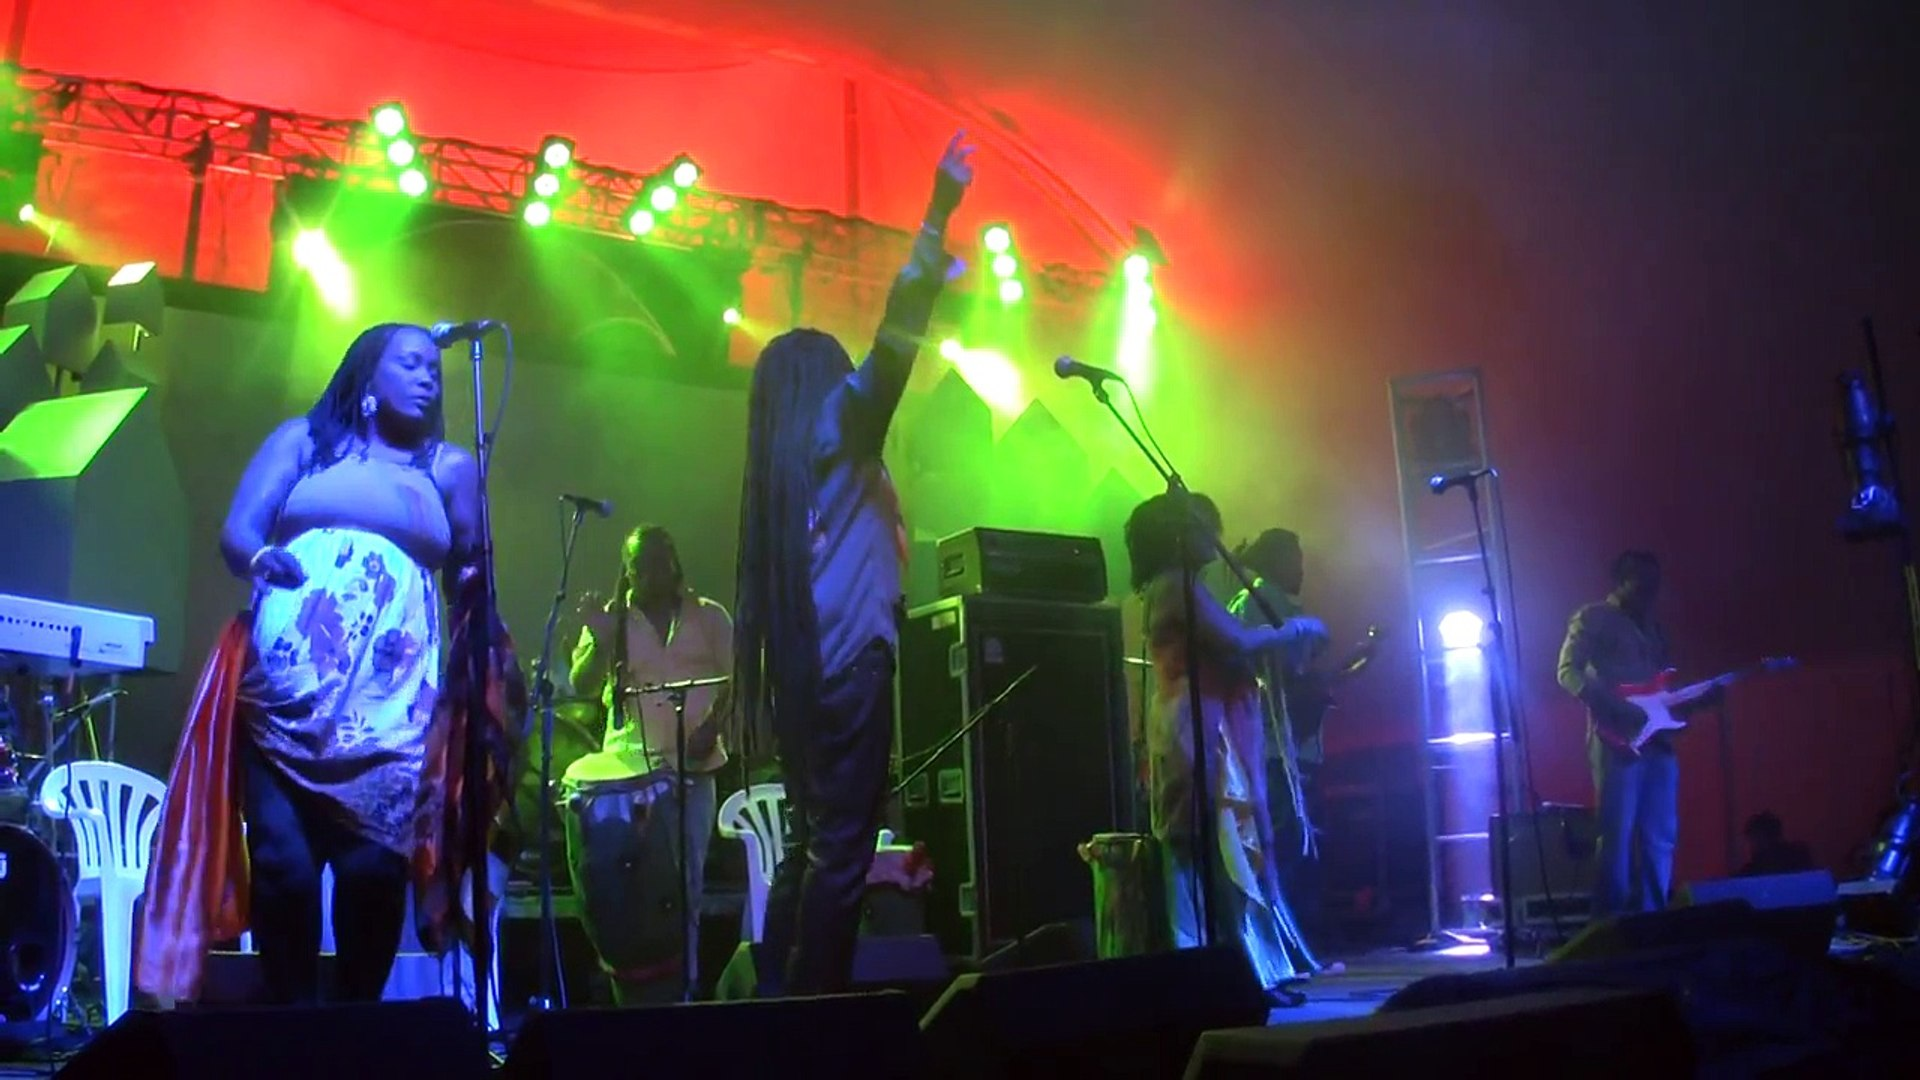 BOUKMAN EKSPERYANS live at LEAF Festival, Black Mountain, North Carolina,5-09-2014. PART 1